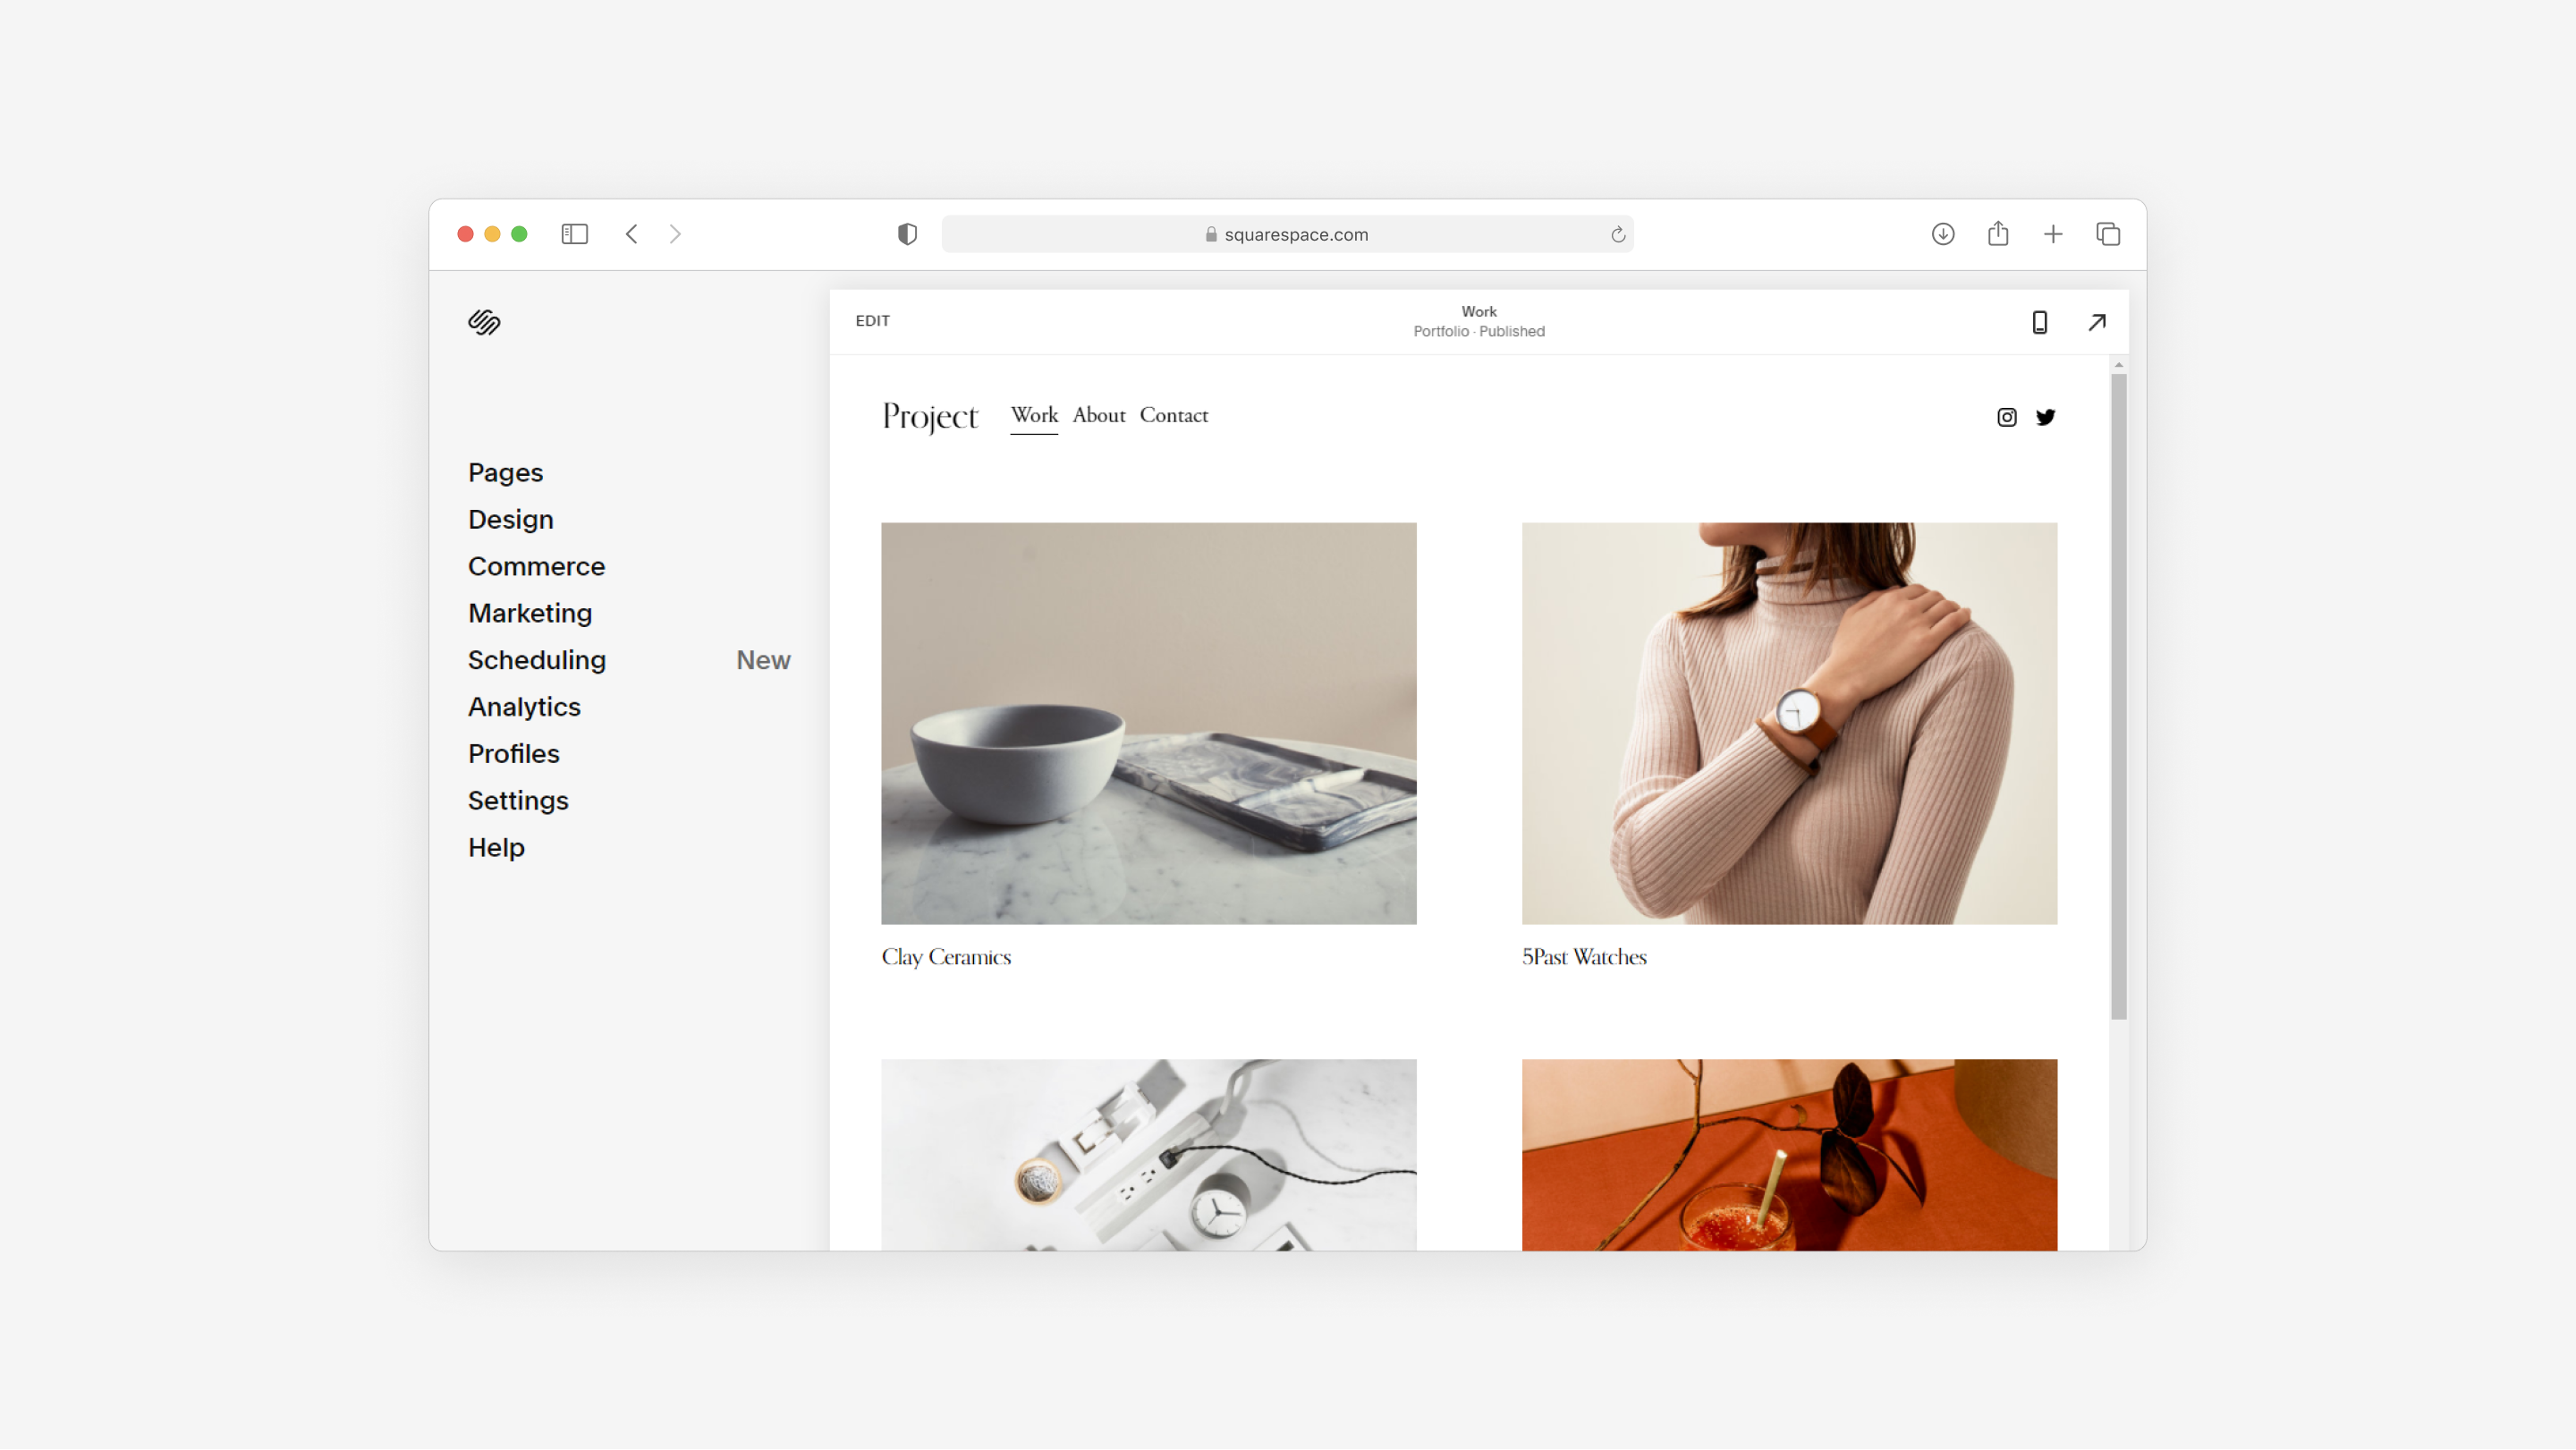 squarespace, a good example of an all-in-one website builder